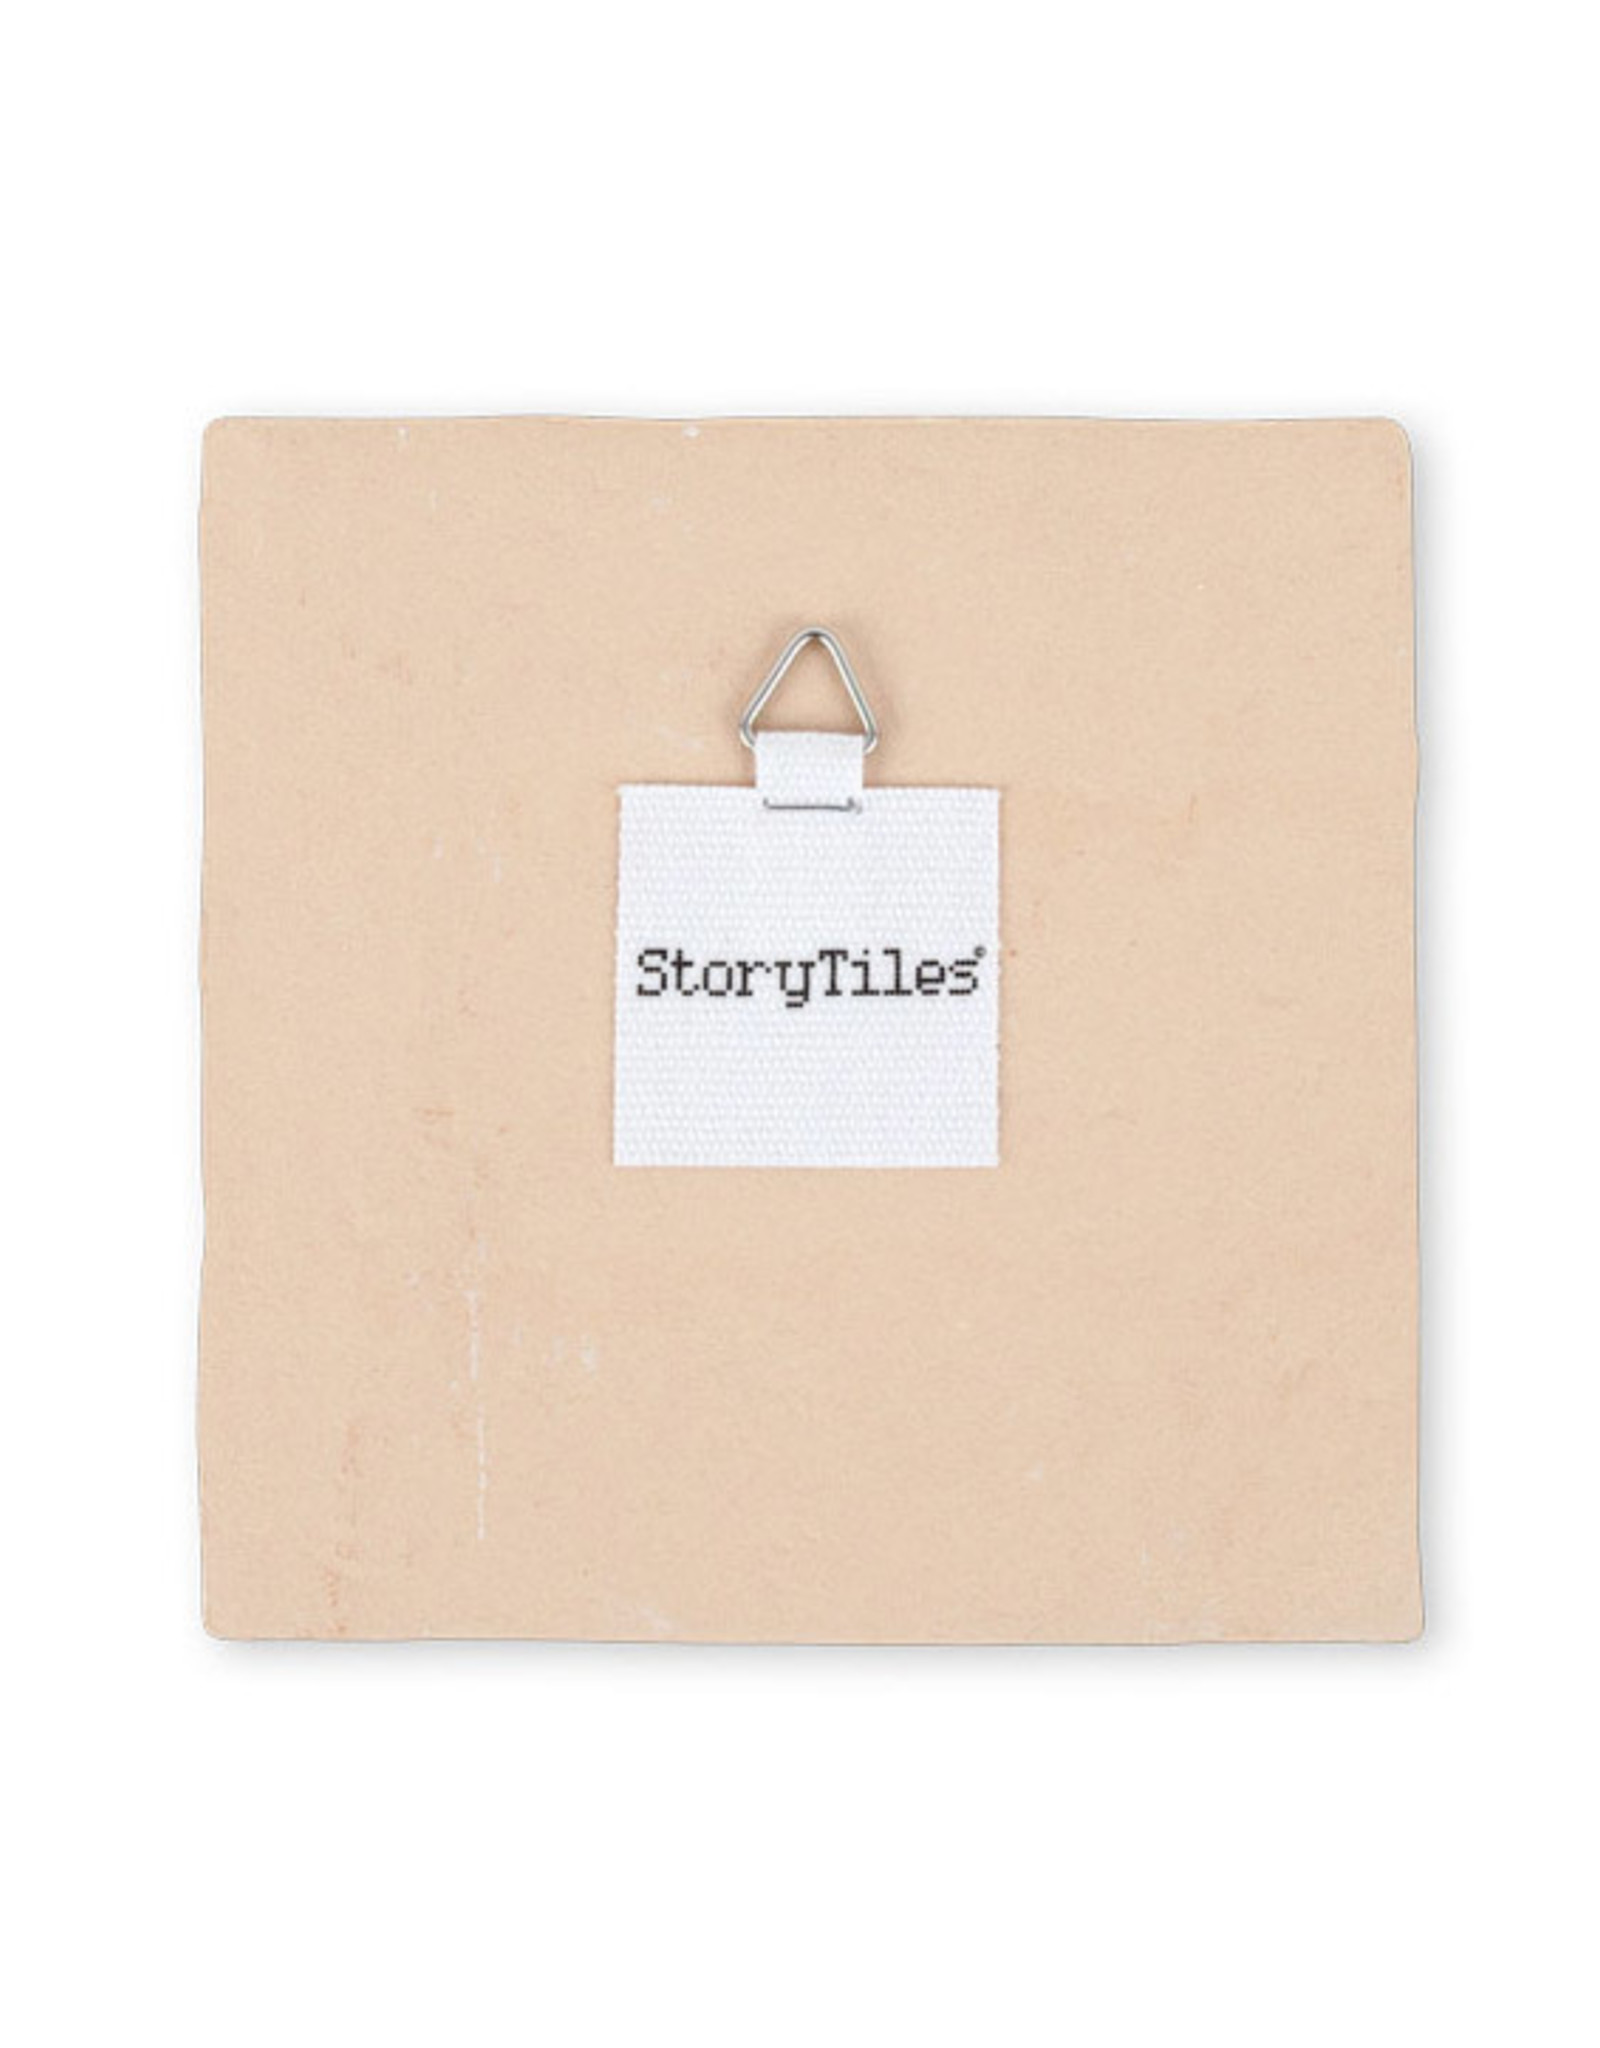 "StoryTiles ""quiet reading"" Tile"